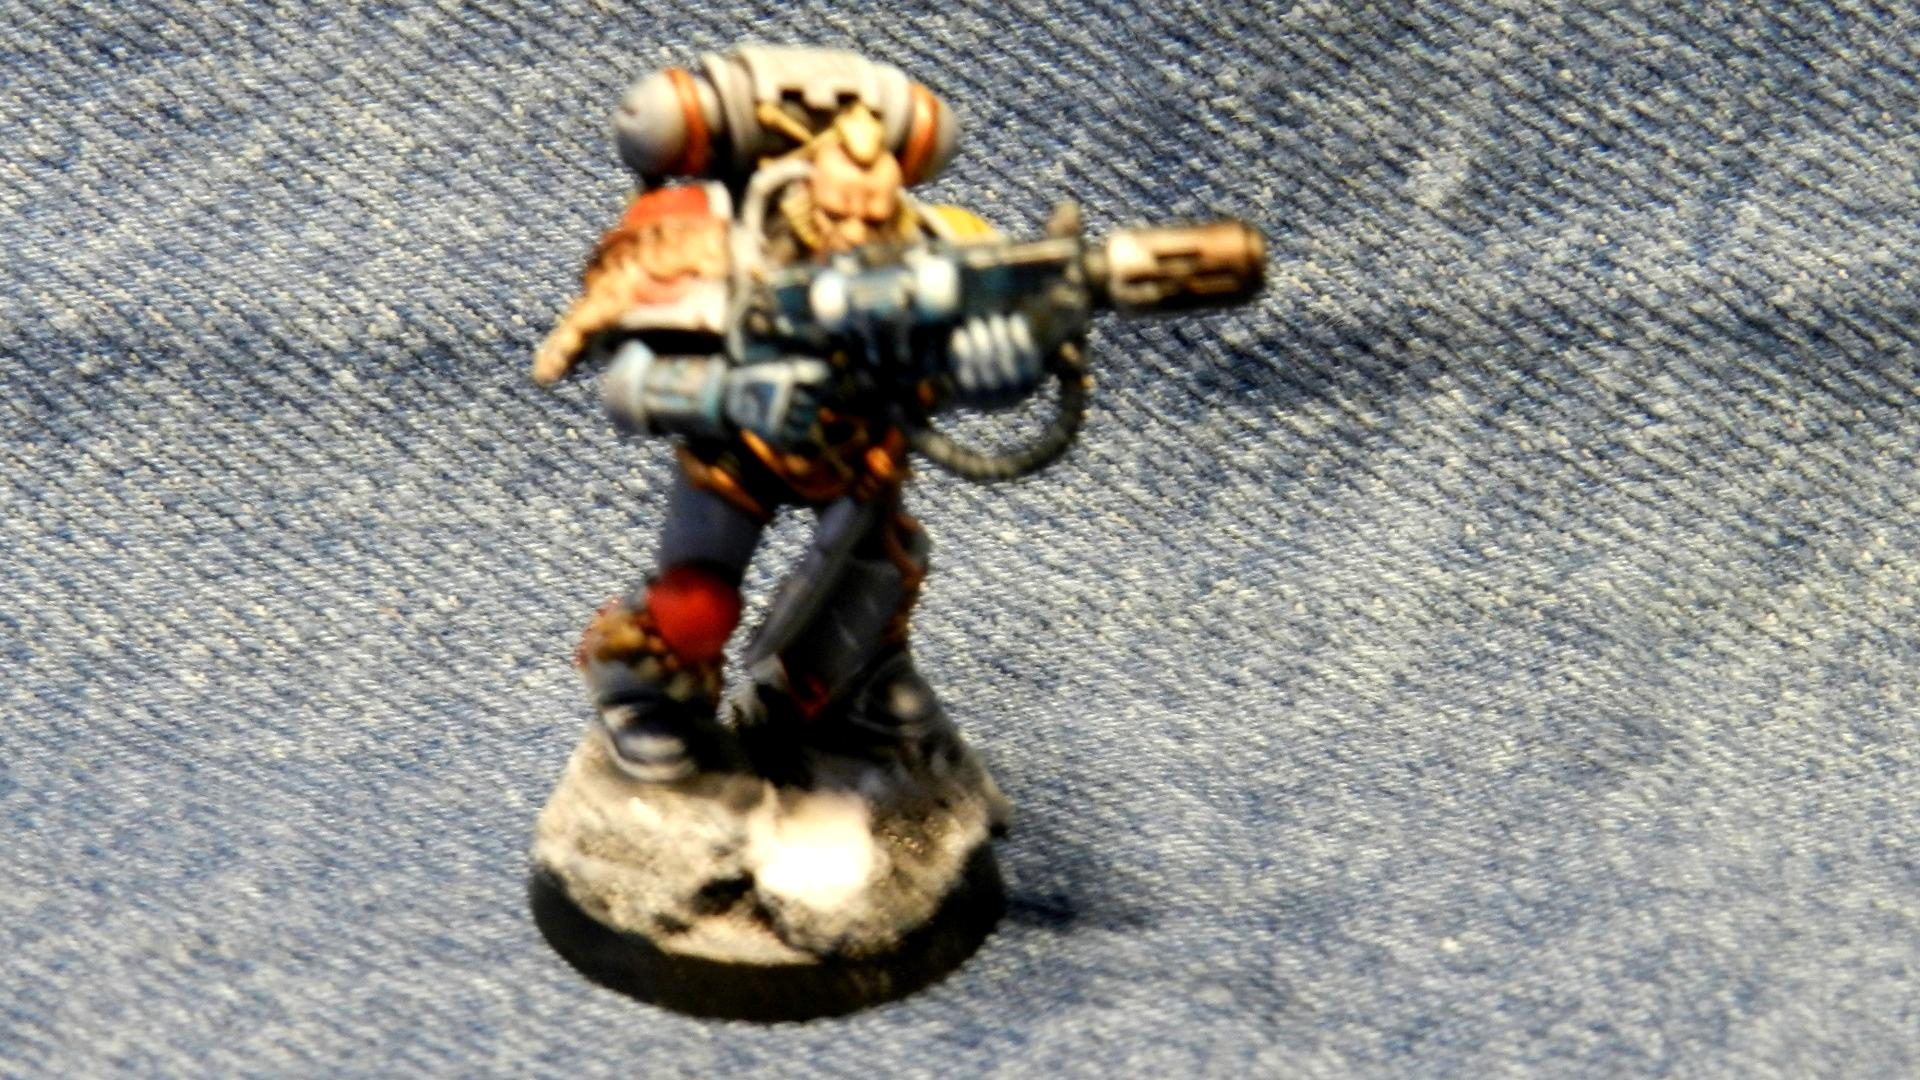 Grey Hunter, Motw, Snow, Space Wolves, Warhammer 40,000, Wolf Guard, Wulfen